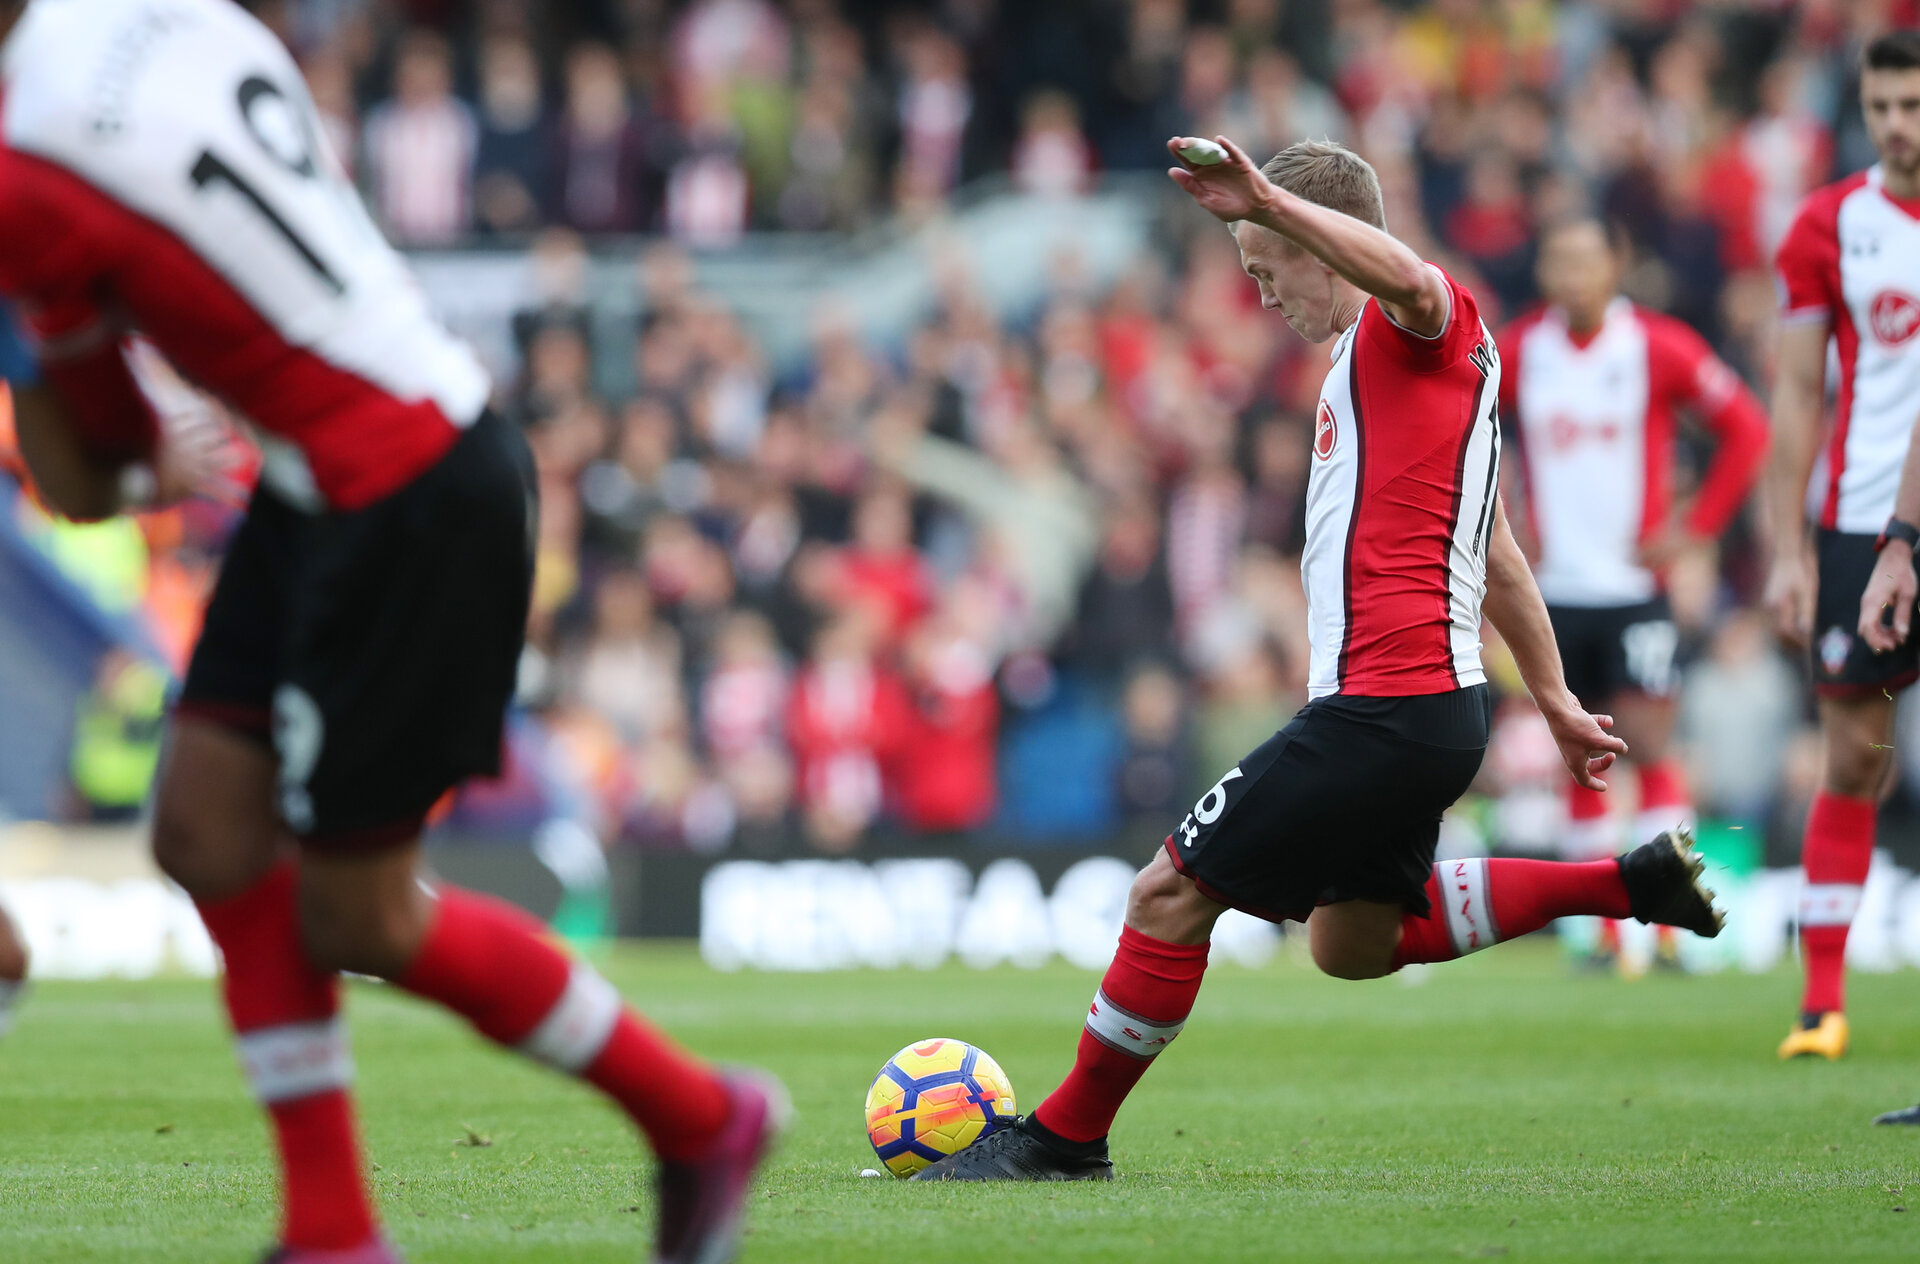 BRIGHTON, ENGLAND - OCTOBER 29: Southampton's James Ward-Prowse shoots from a free-kick which leads to Steven Davis' goal during the Premier League match between Brighton and Hove Albion and Southampton at the Amex Stadium on October 28, 2017 in Brighton, England. (Photo by Matt Watson/Southampton FC via Getty Images)